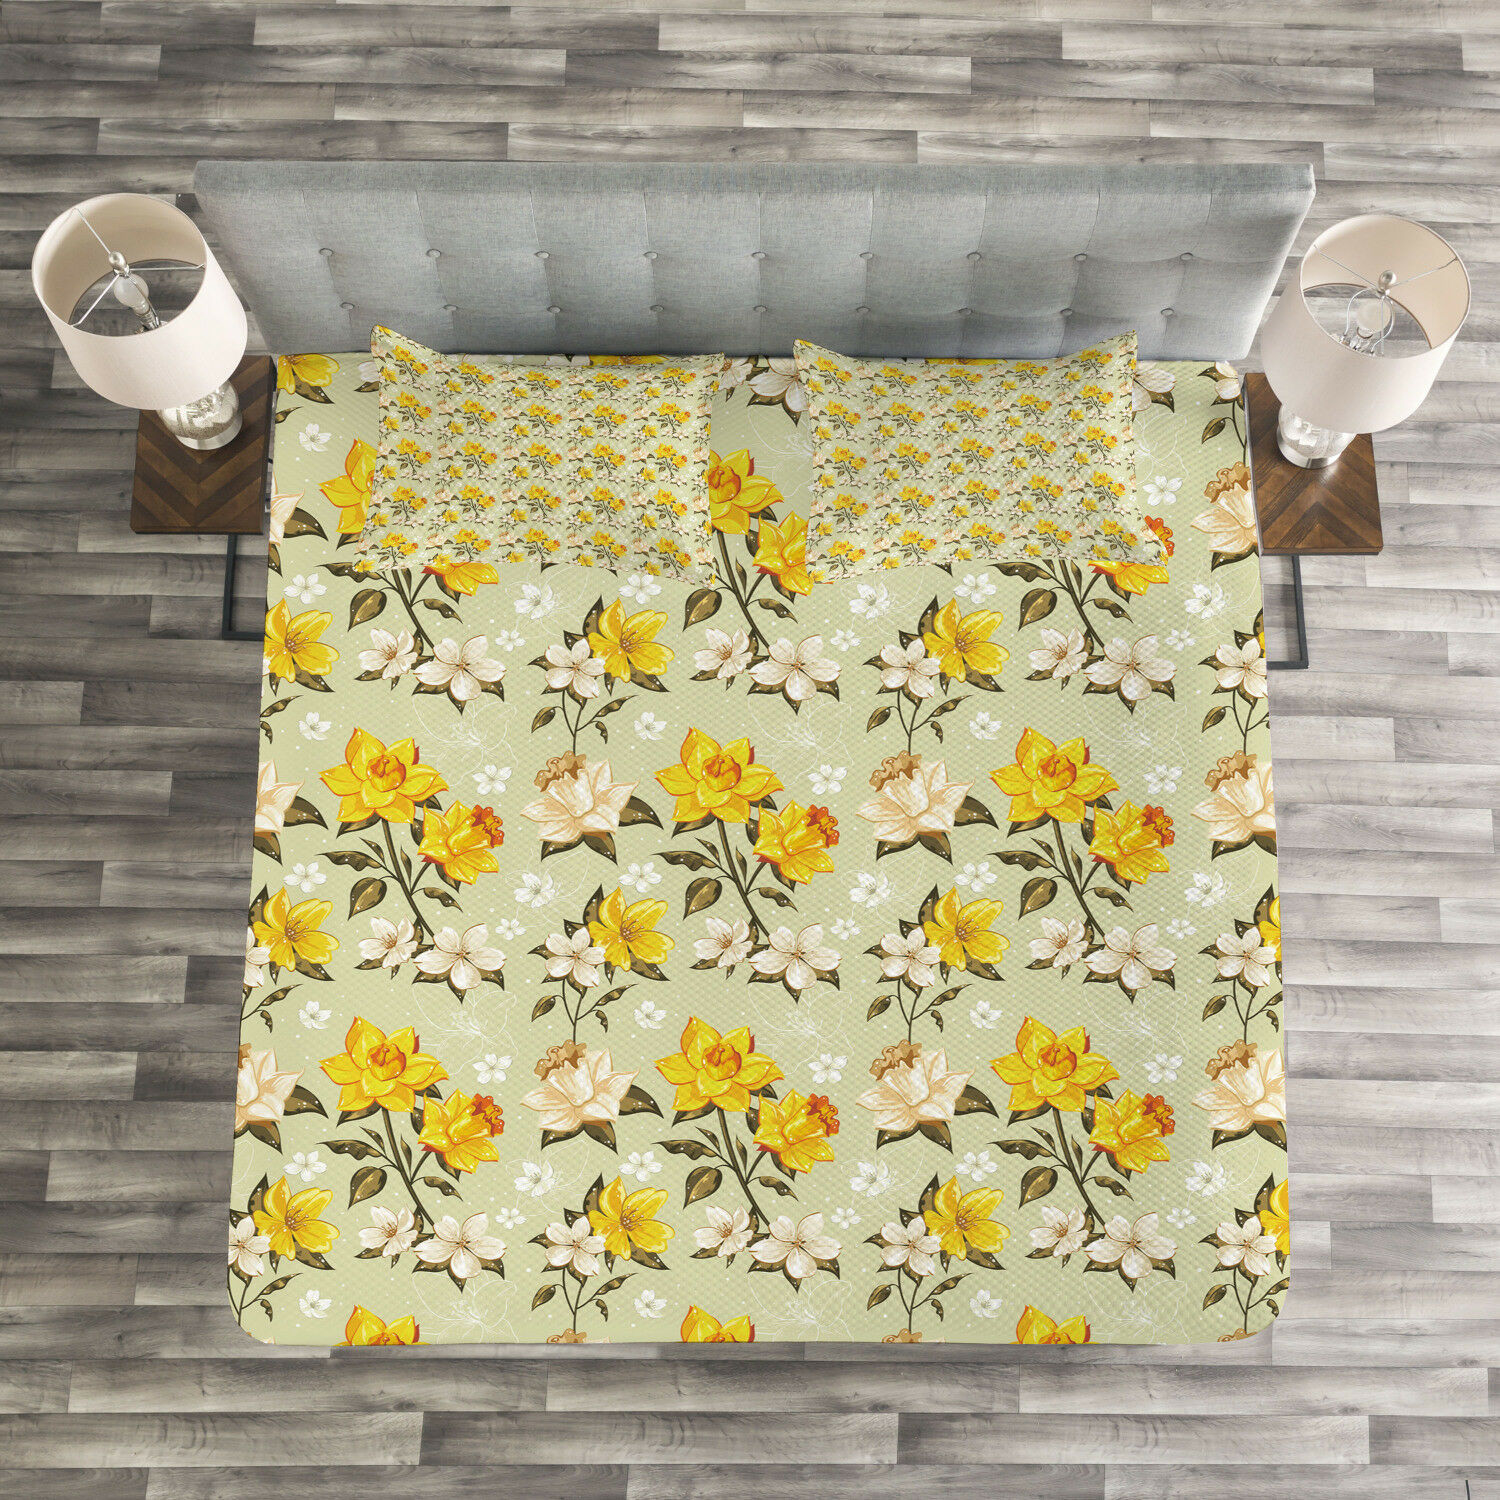 Vintage Quilted Bedspread & Pillow Shams Set, Narcissus Wildflowers Print